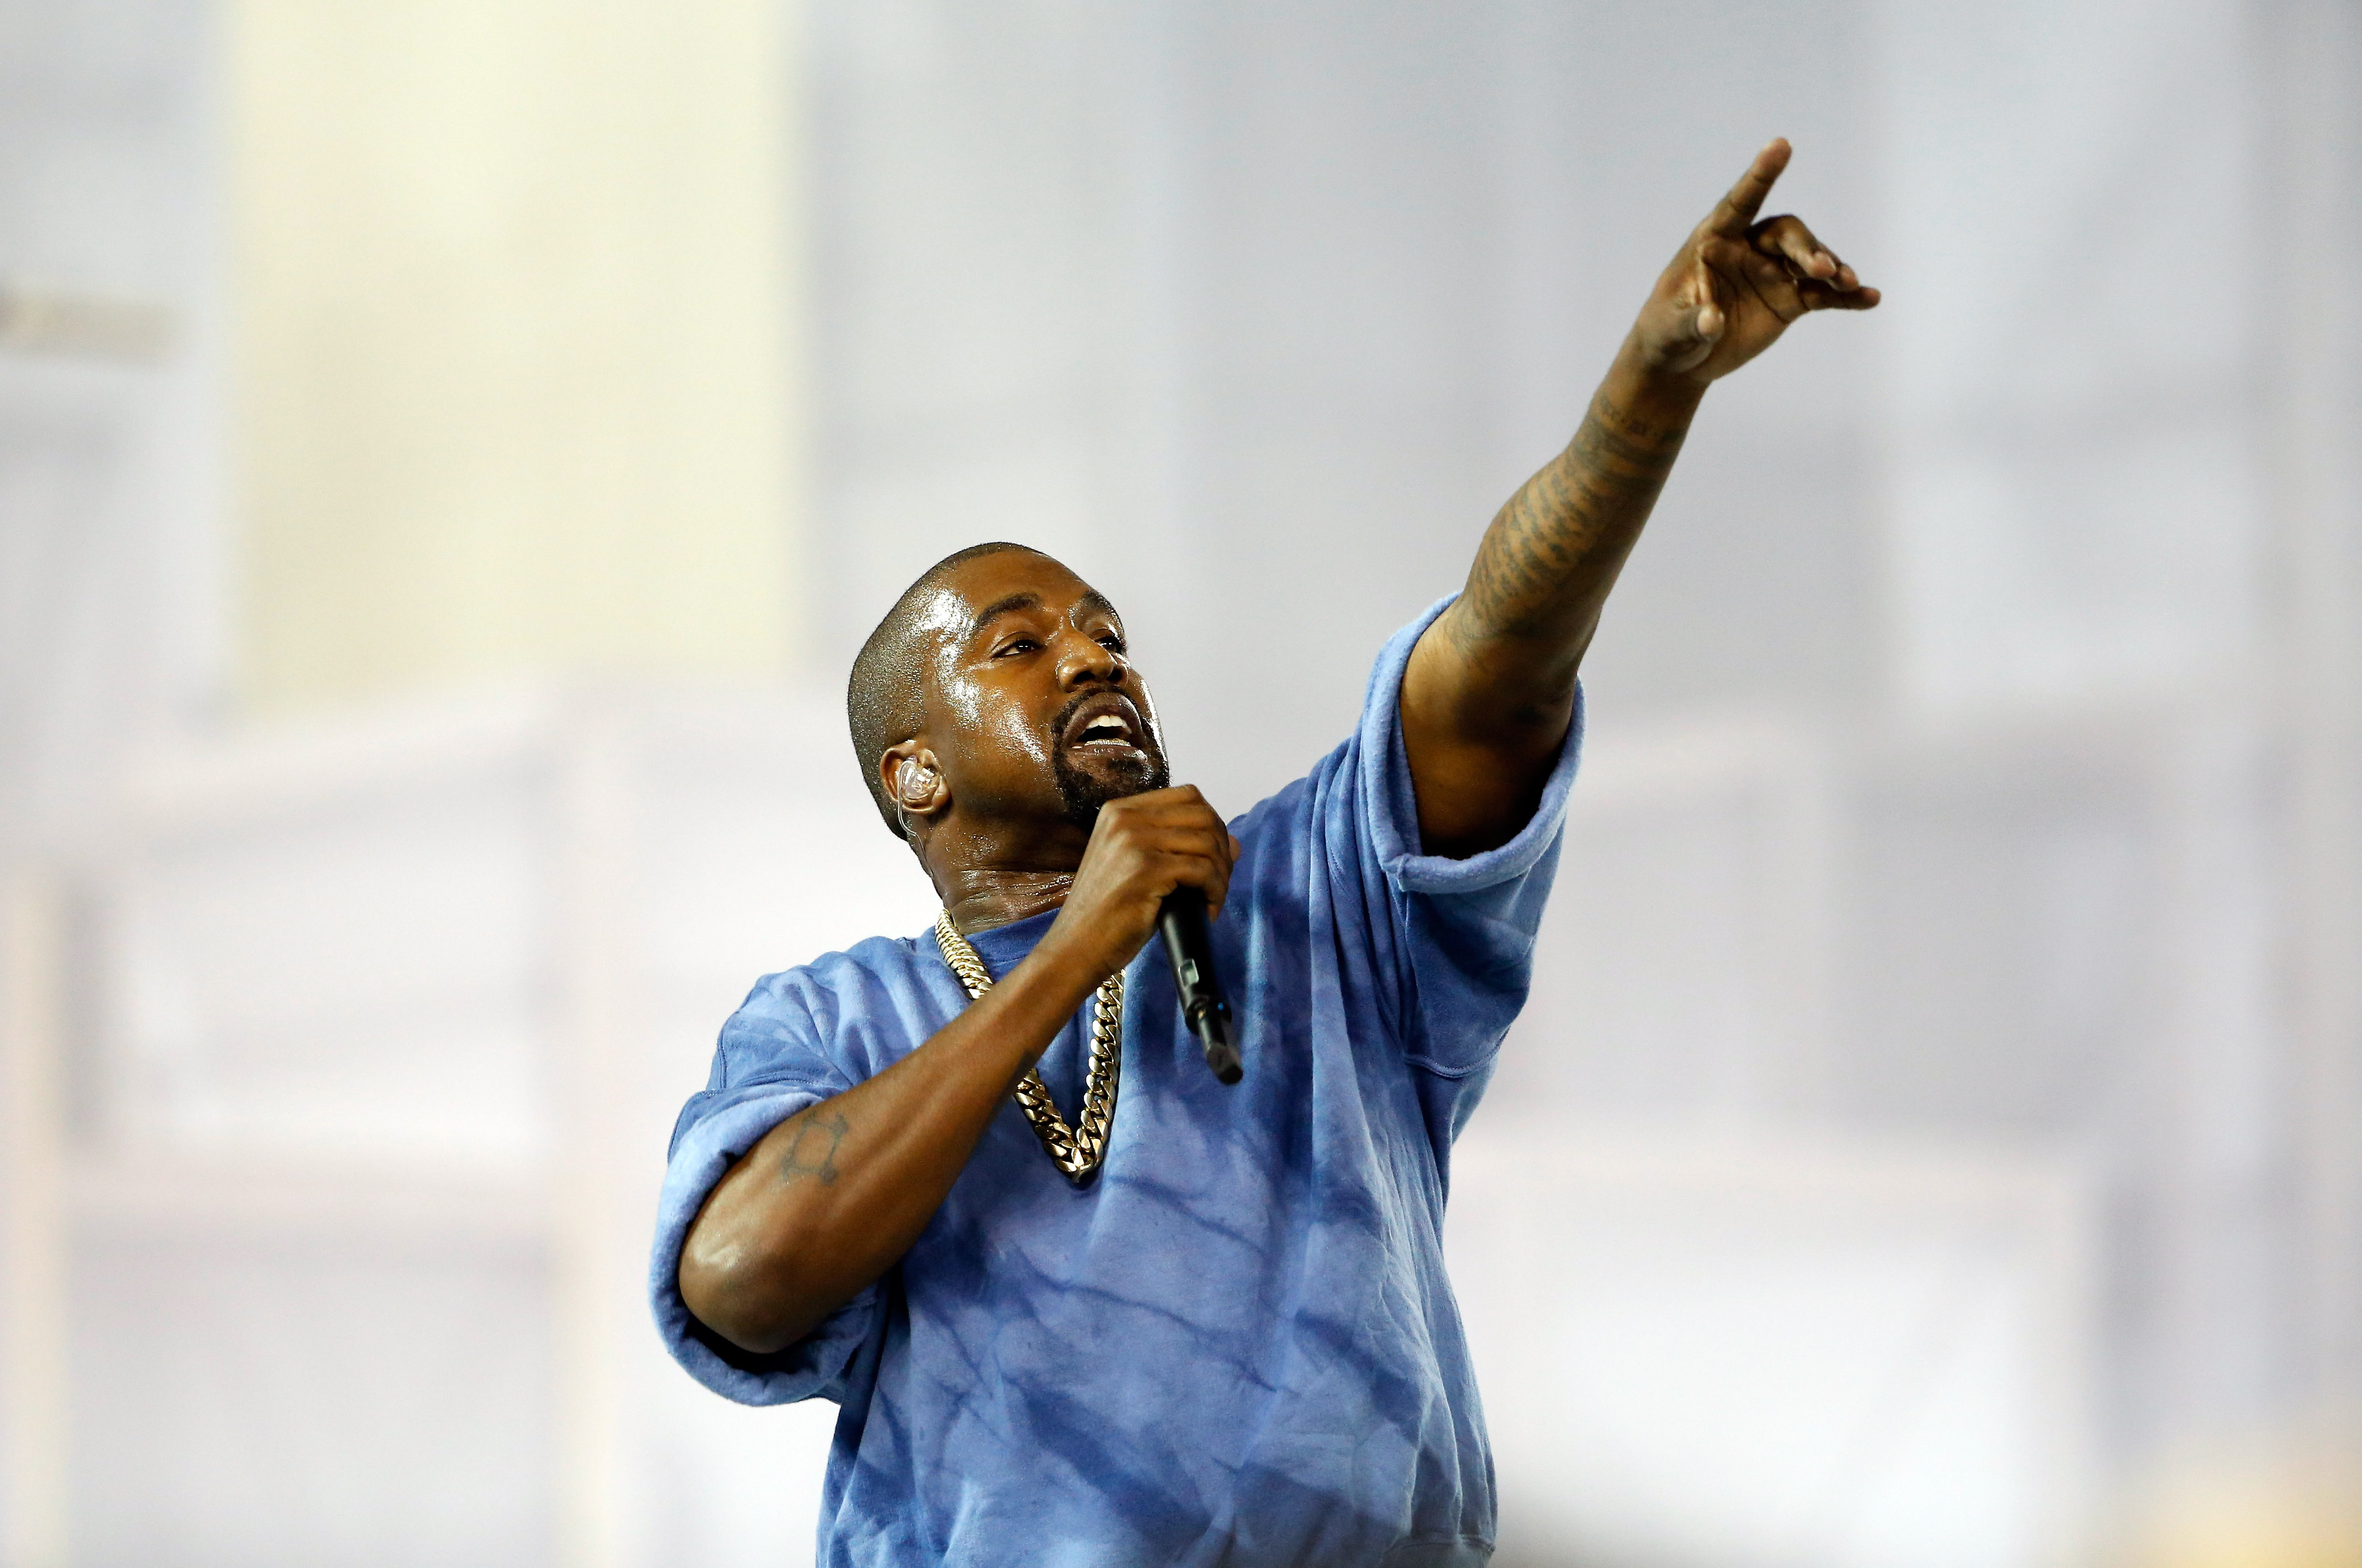 Kanye West Is The 2015 VMA Vanguard Award Recipient & His Influence ...